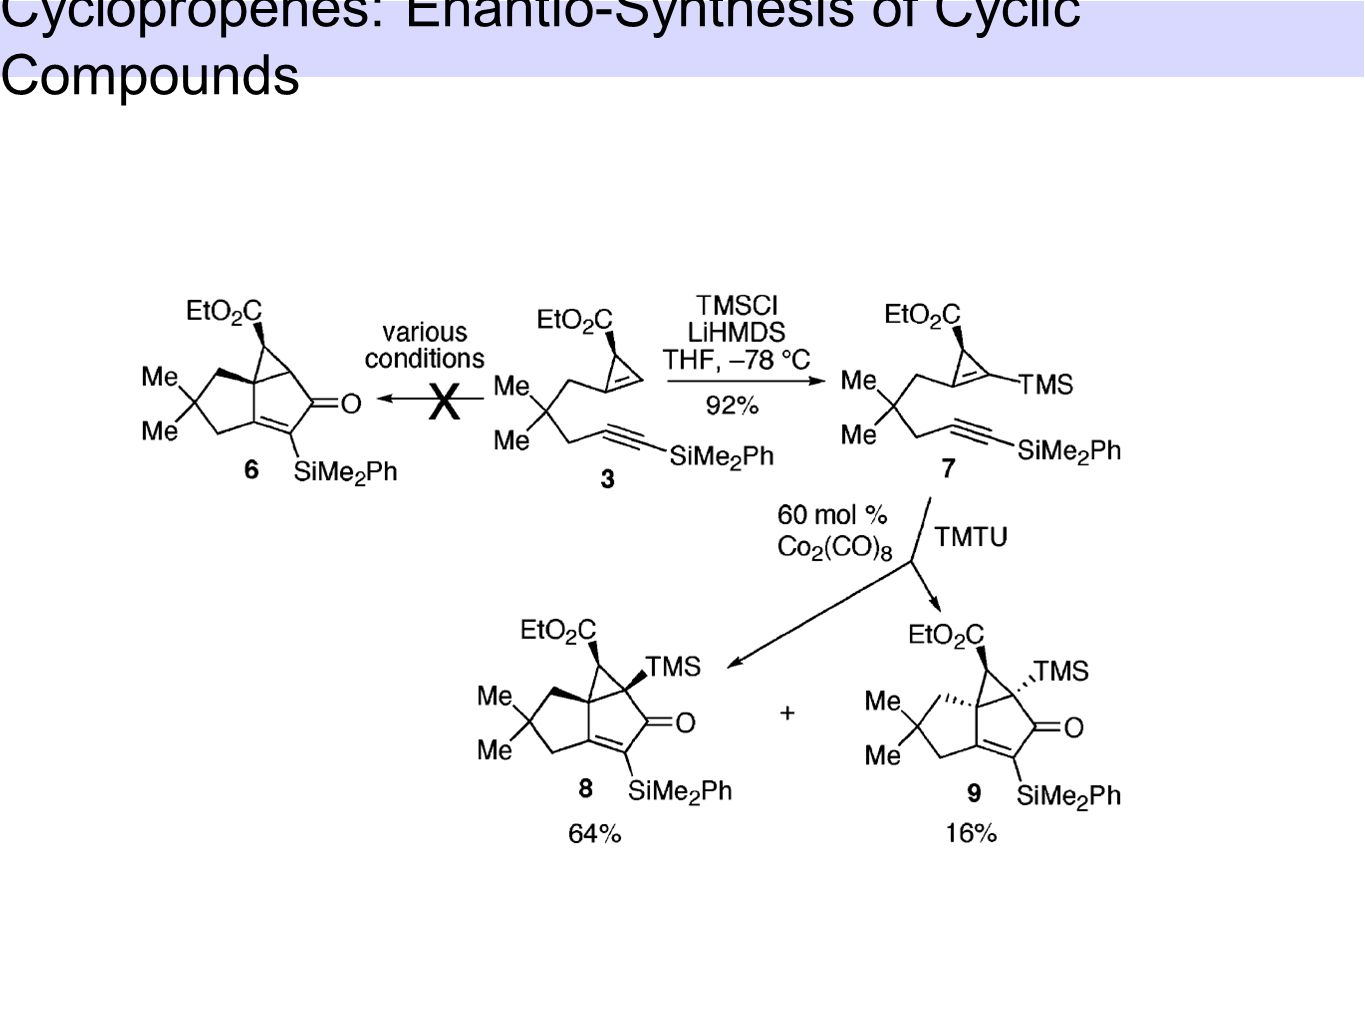 Cyclopropenes: Enantio-Synthesis of Cyclic Compounds